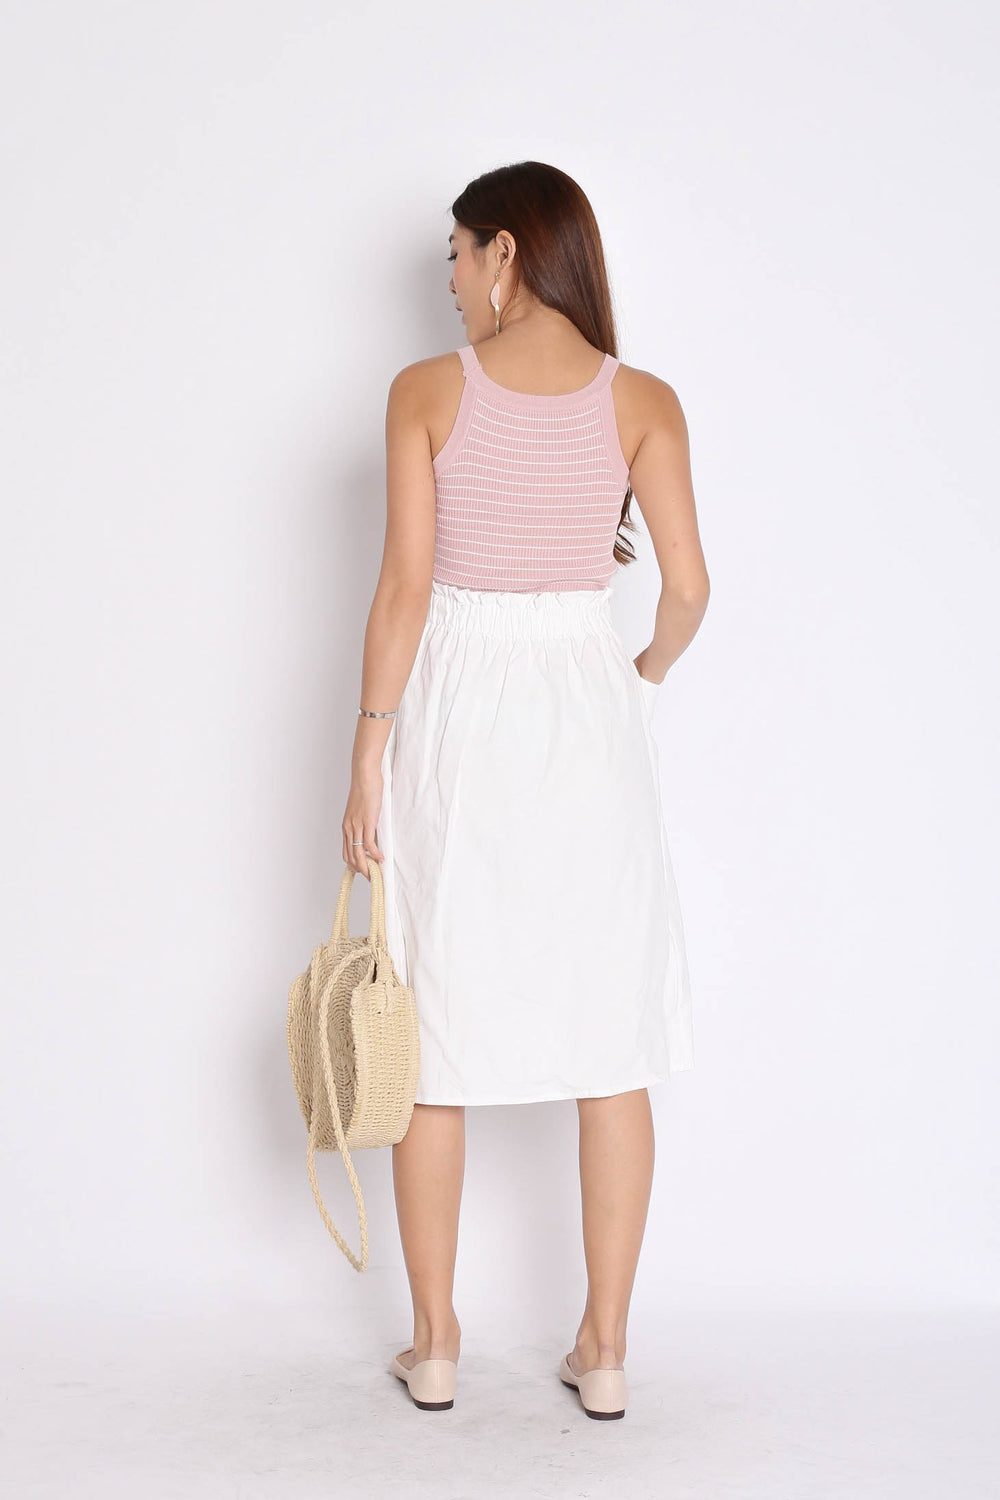 BASIC RIBBED STRIPES KNIT TOP IN DUSTY PINK